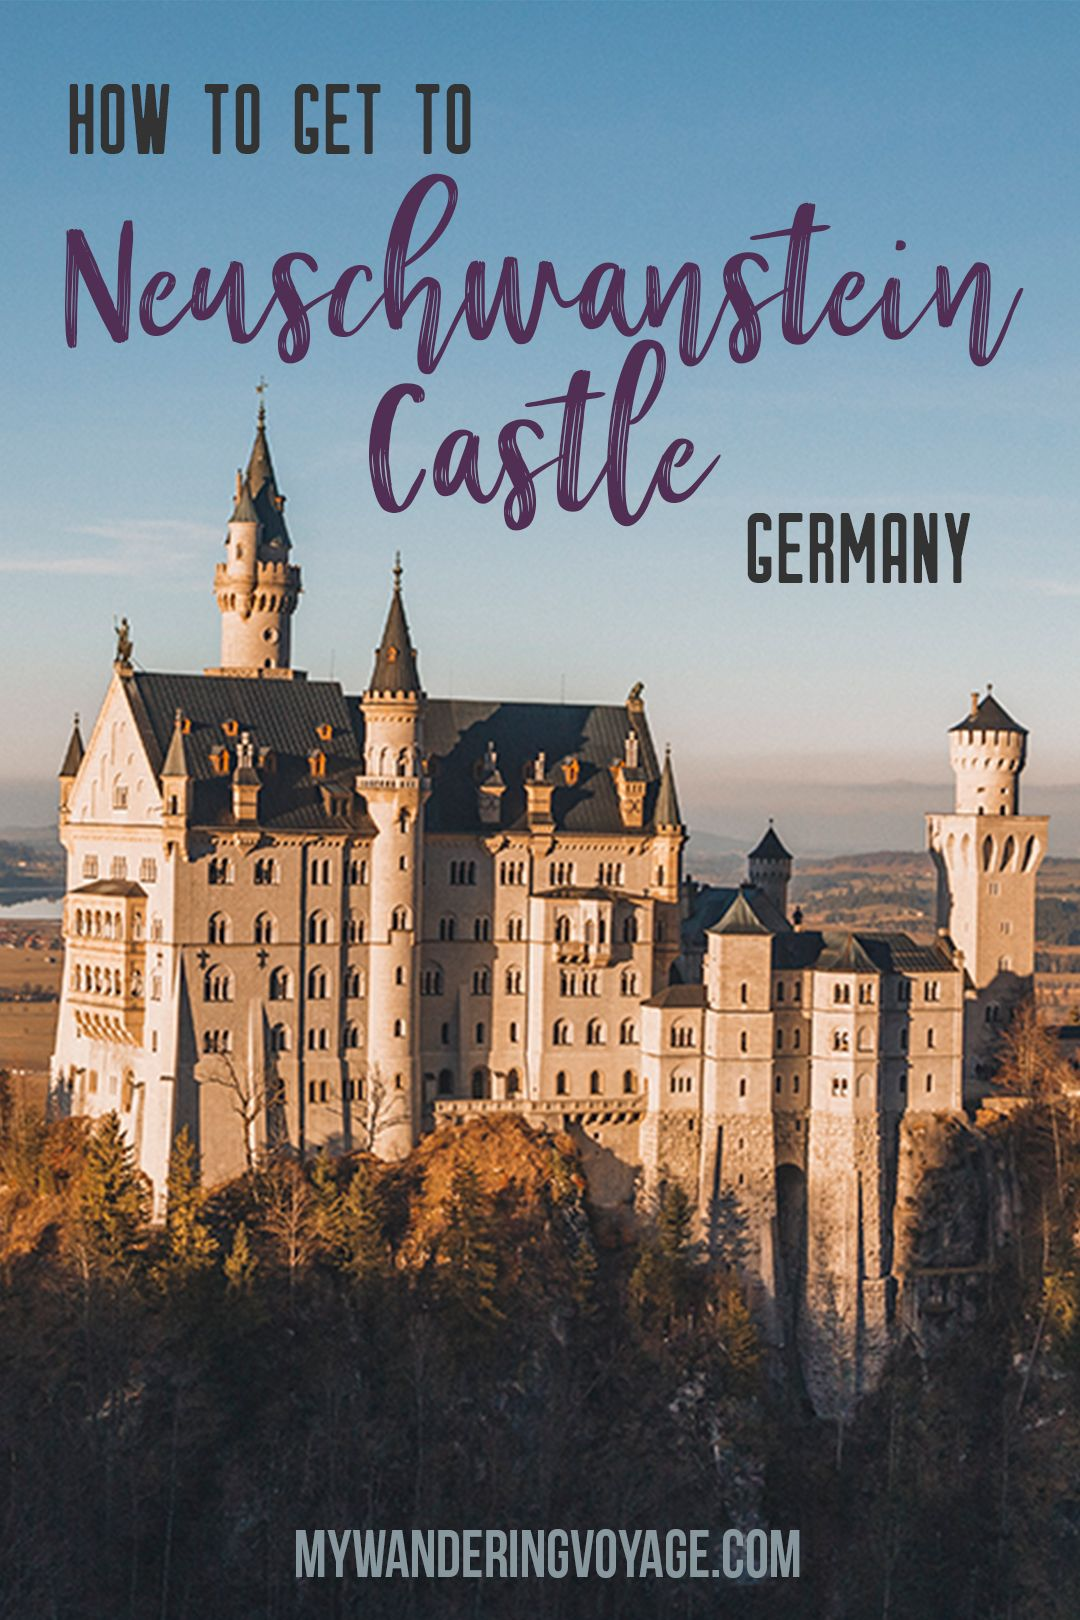 730f3fa52b4d53c6503701c82031093b - How Do You Get To Neuschwanstein Castle From Munich